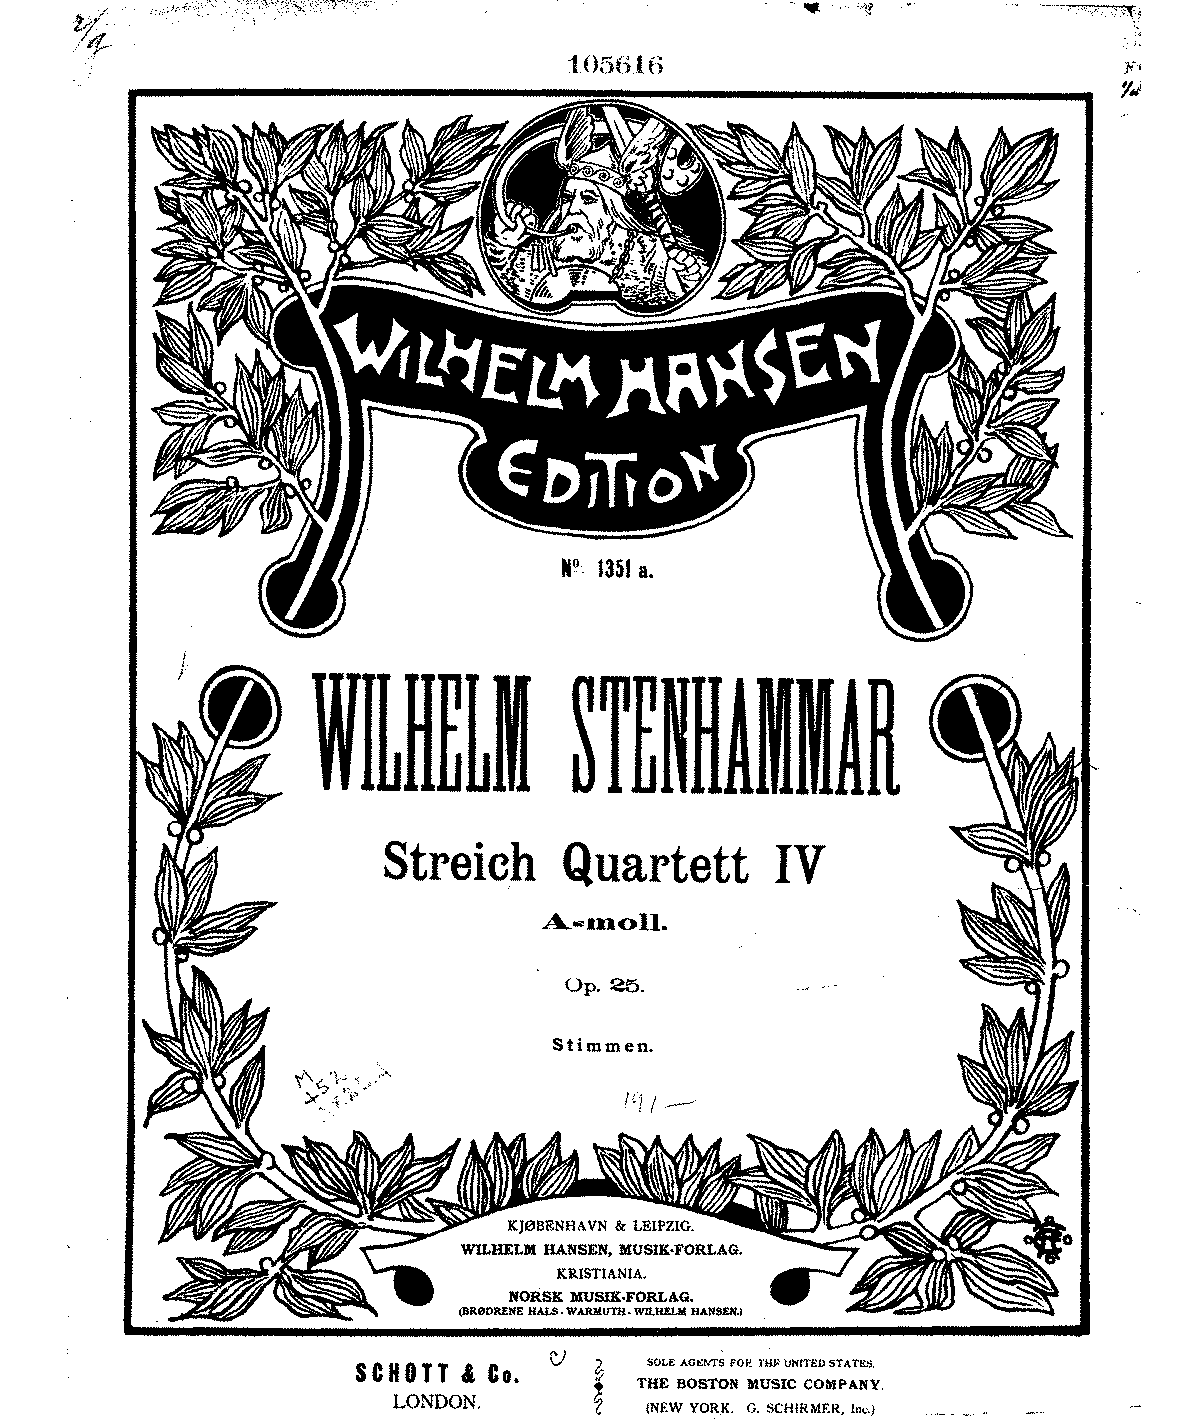 SIBLEY1802.6582.17086.f9cd-39087009068794violin1.pdf